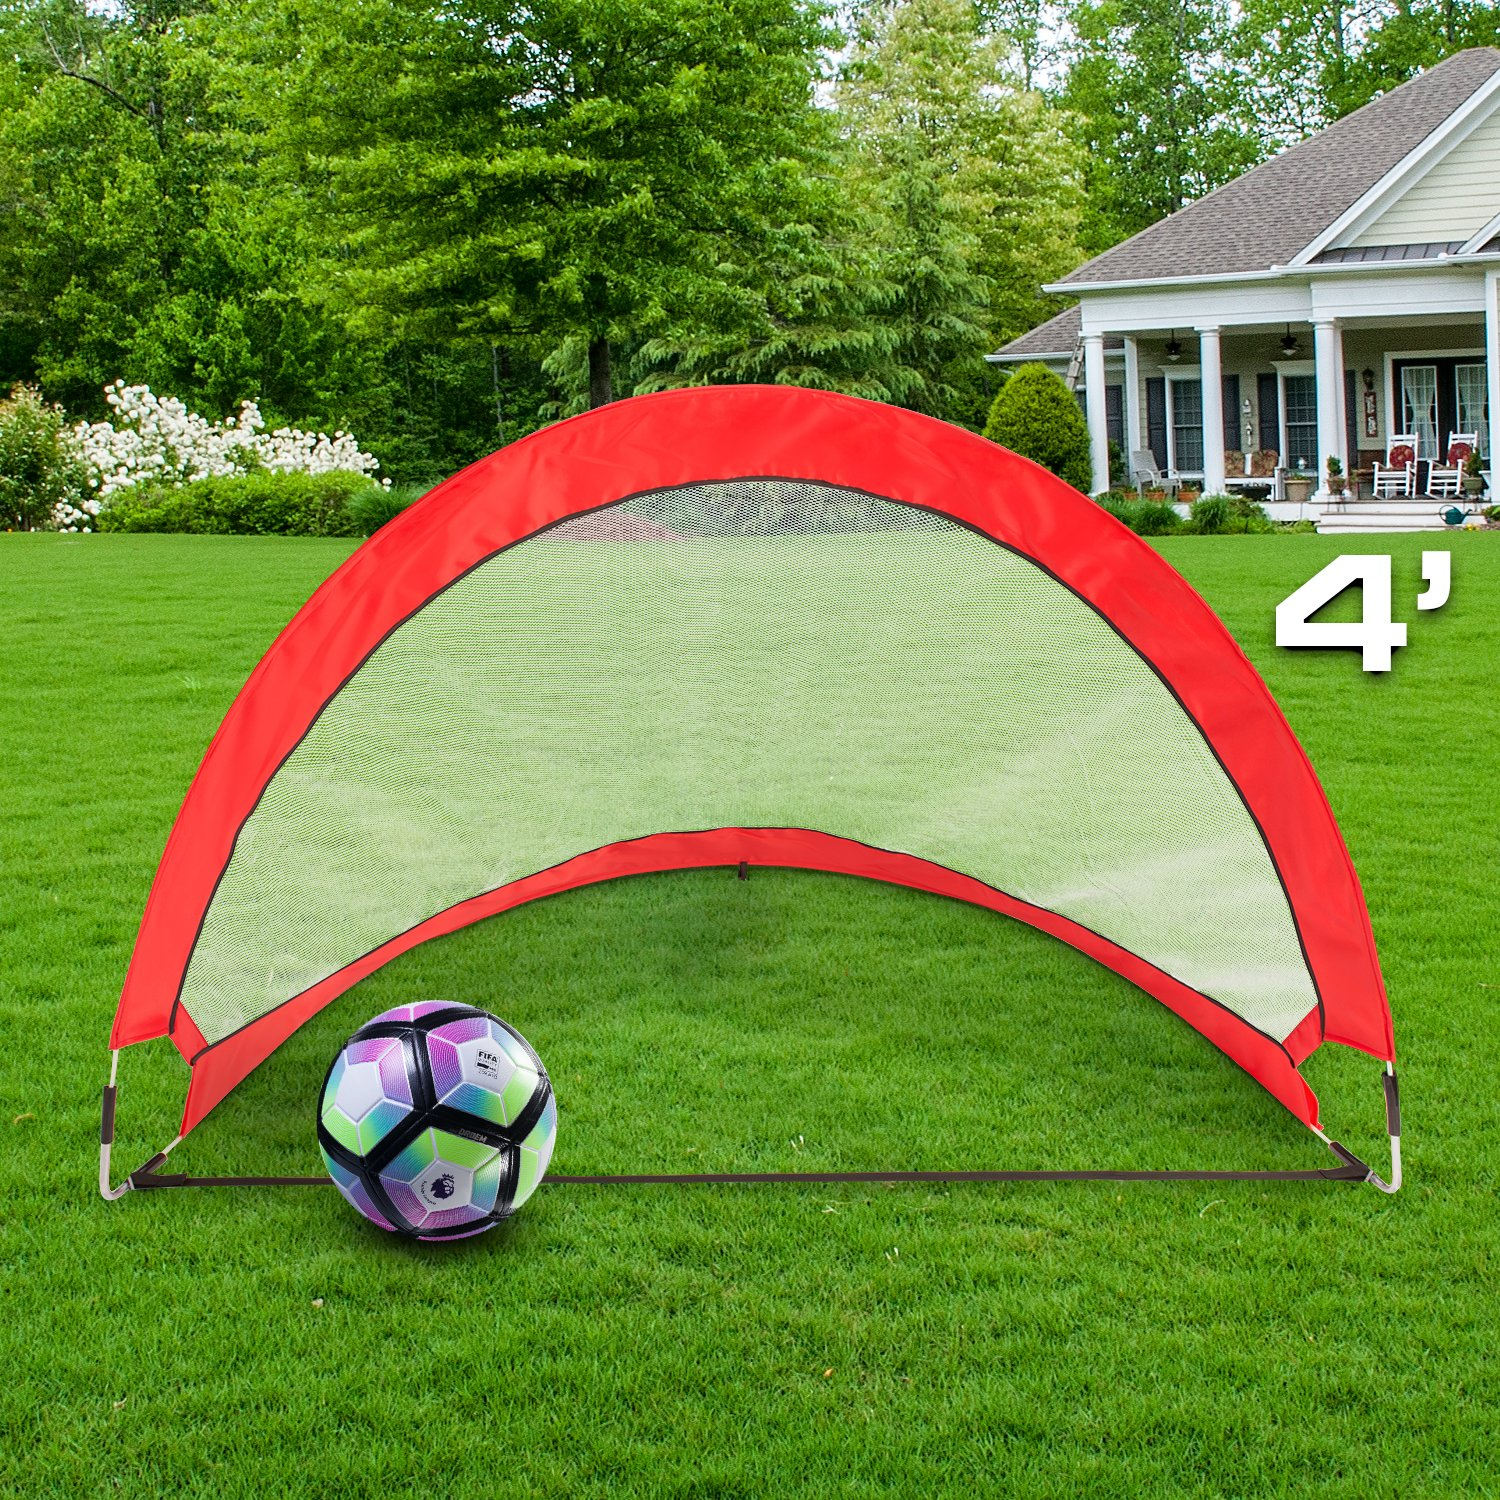 Abco Tech Portable Soccer Goal Set for Training, Practice & Game – Pop-up Soccer Net – 2 Soccer Goals, 6 Disc Cones & 8 Spikes – Carry Bag – Easy to Assemble & Store – Be it Backyard or Public Fields by Abco Tech (Image #6)